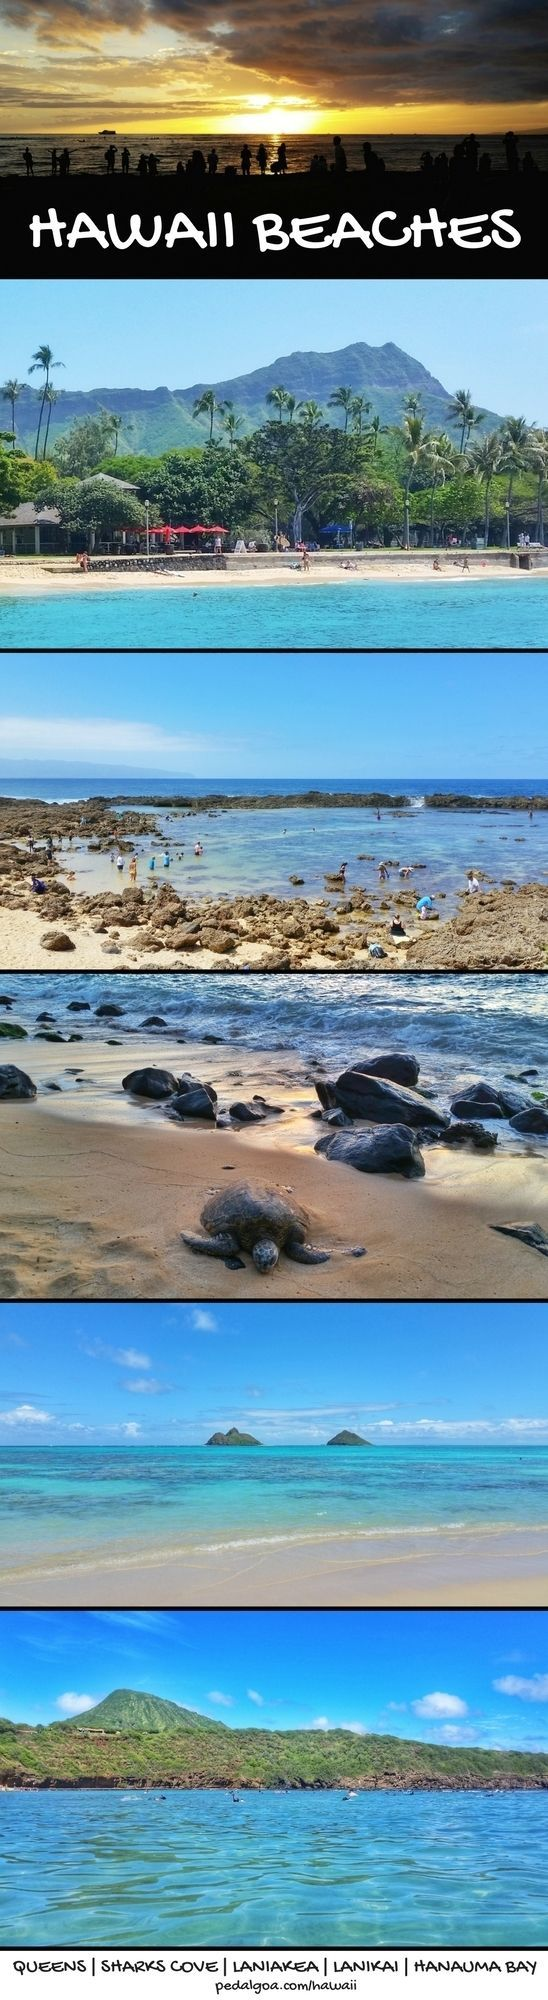 For best beaches in Hawaii, activities like swimming, snorkeling, to see sea turtles! Going to best Oahu beaches also gives other things to do with nearby hiking trails for some Oahu hikes. Tips for near hotel in Waikiki or Honolulu, or with a rental car or by bus to North Shore for trip to see beautiful ocean sunset. USA travel destinations for bucket list for world adventures when on a budget! Put outfits on list of what to pack, what to wear for Hawaii packing list... #hawaii #oahu